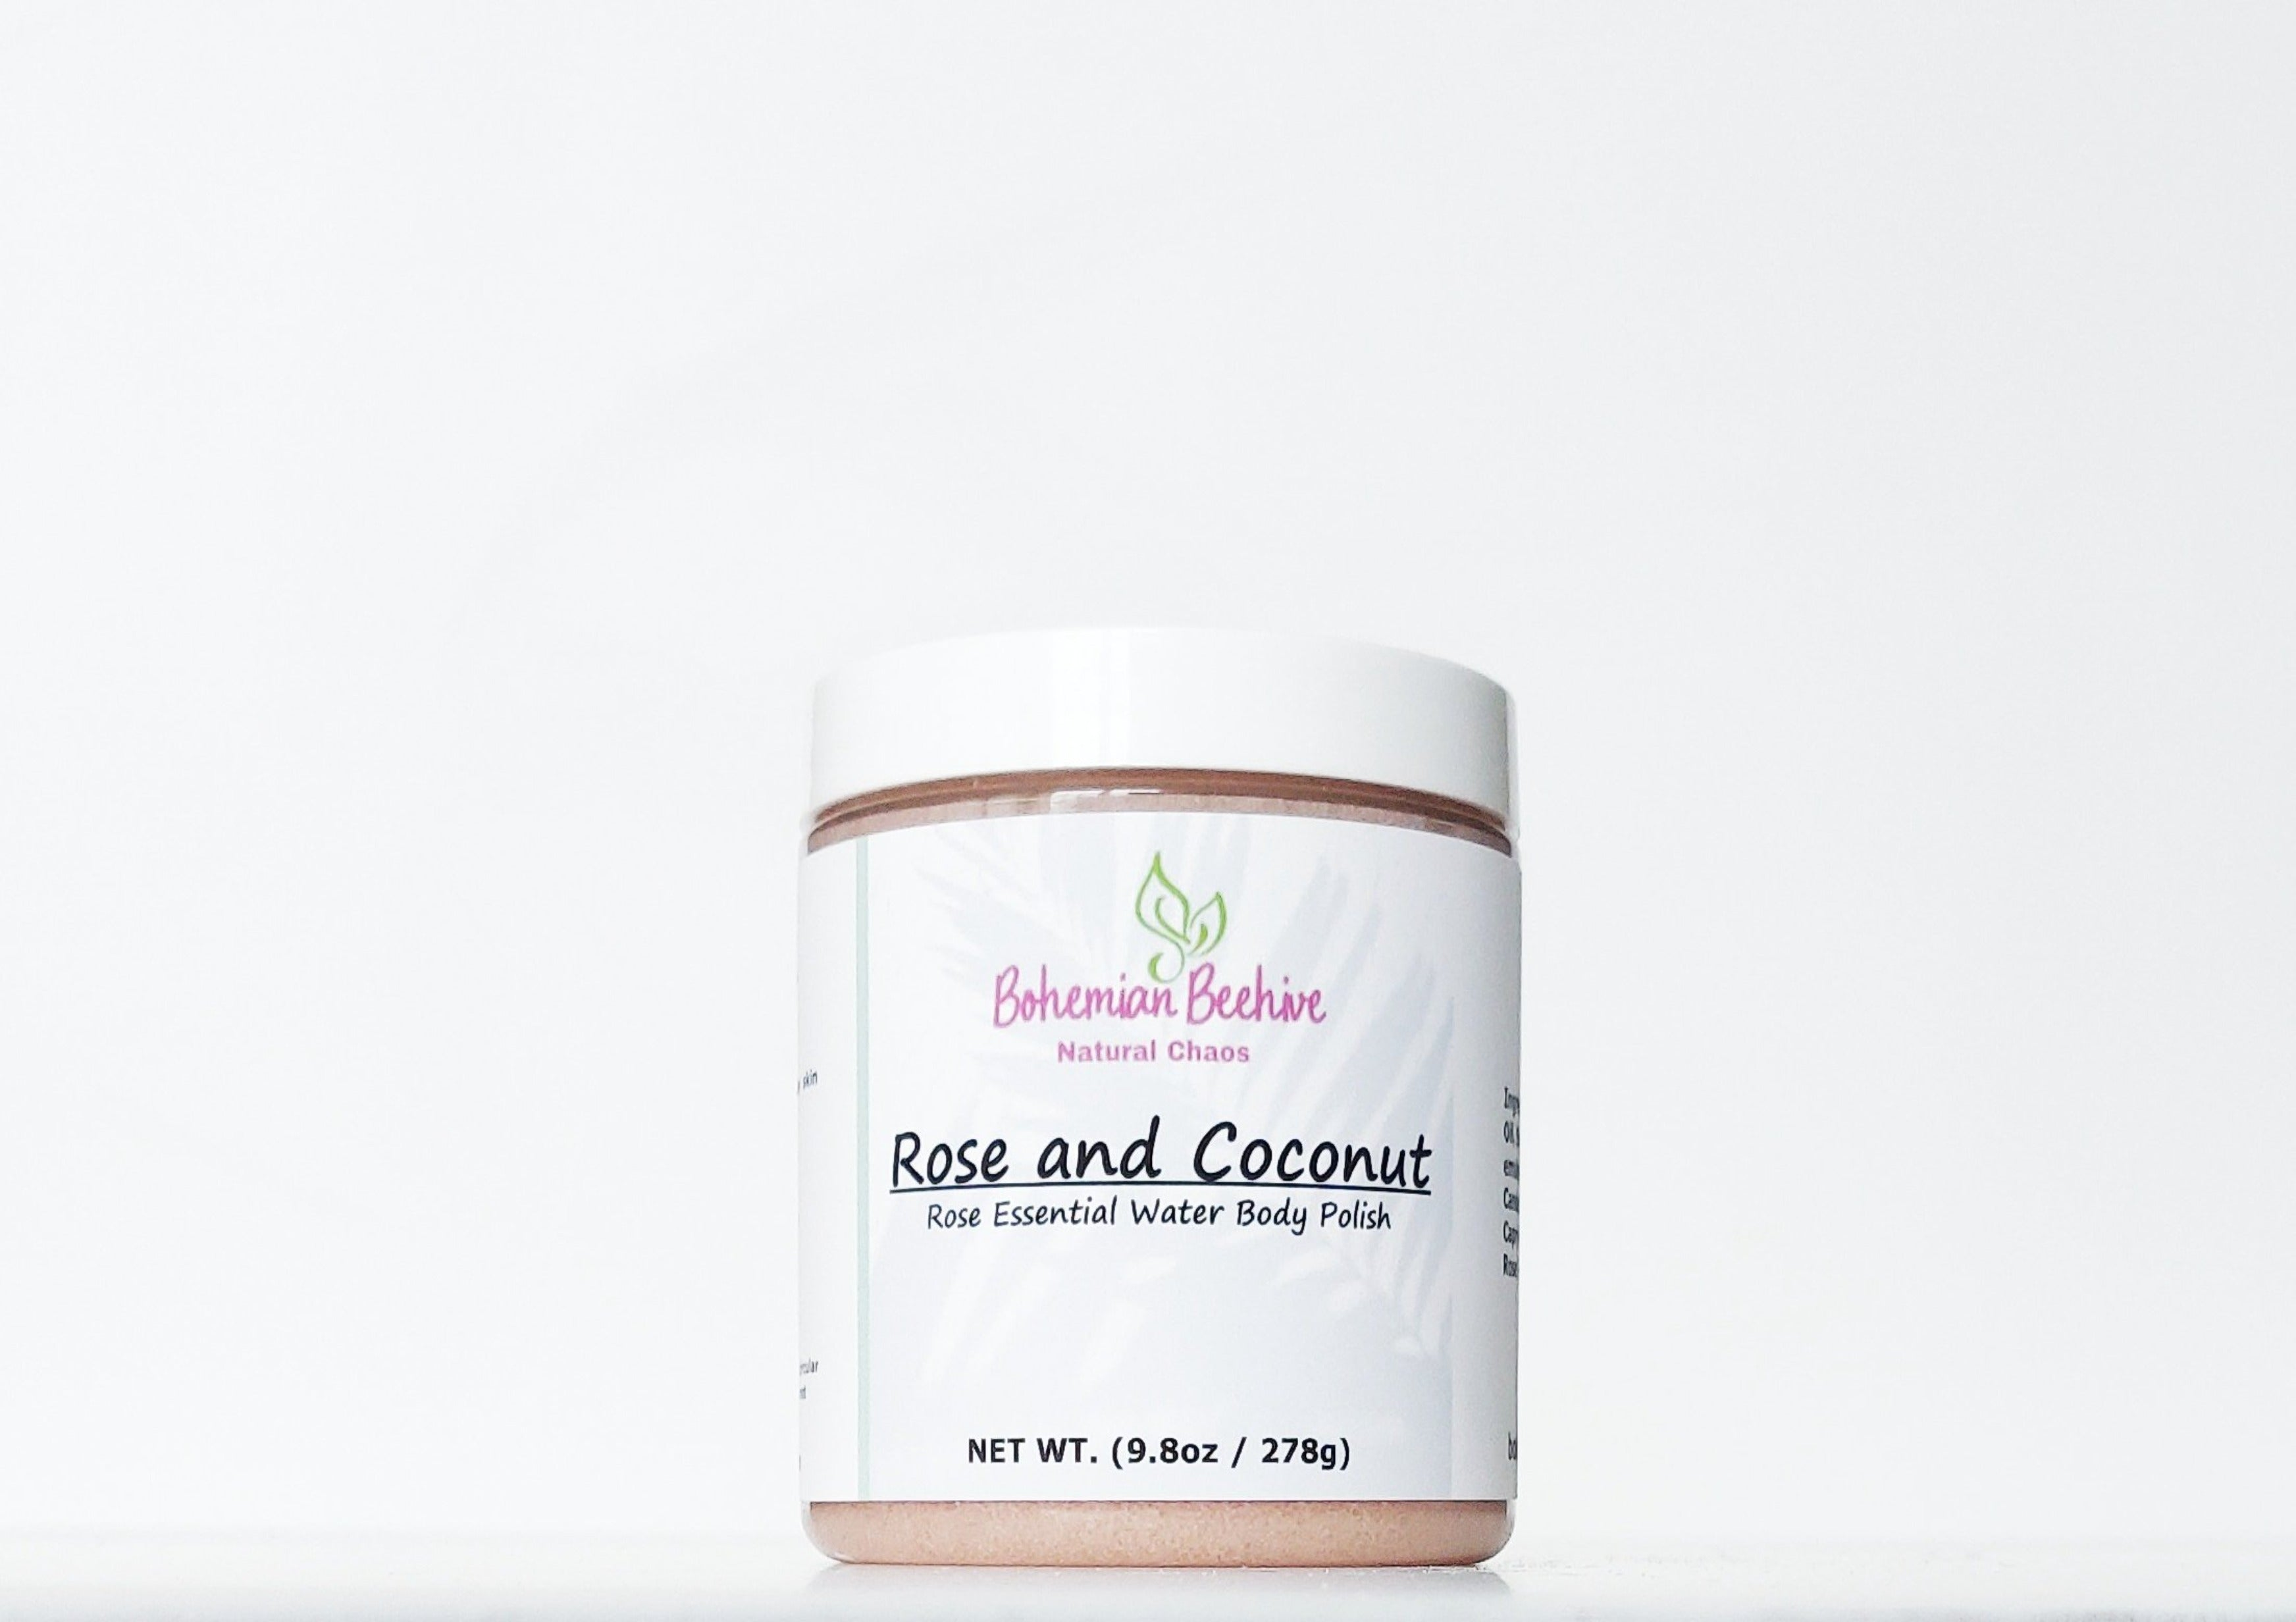 ROSE AND COCONUT BODY POLISH